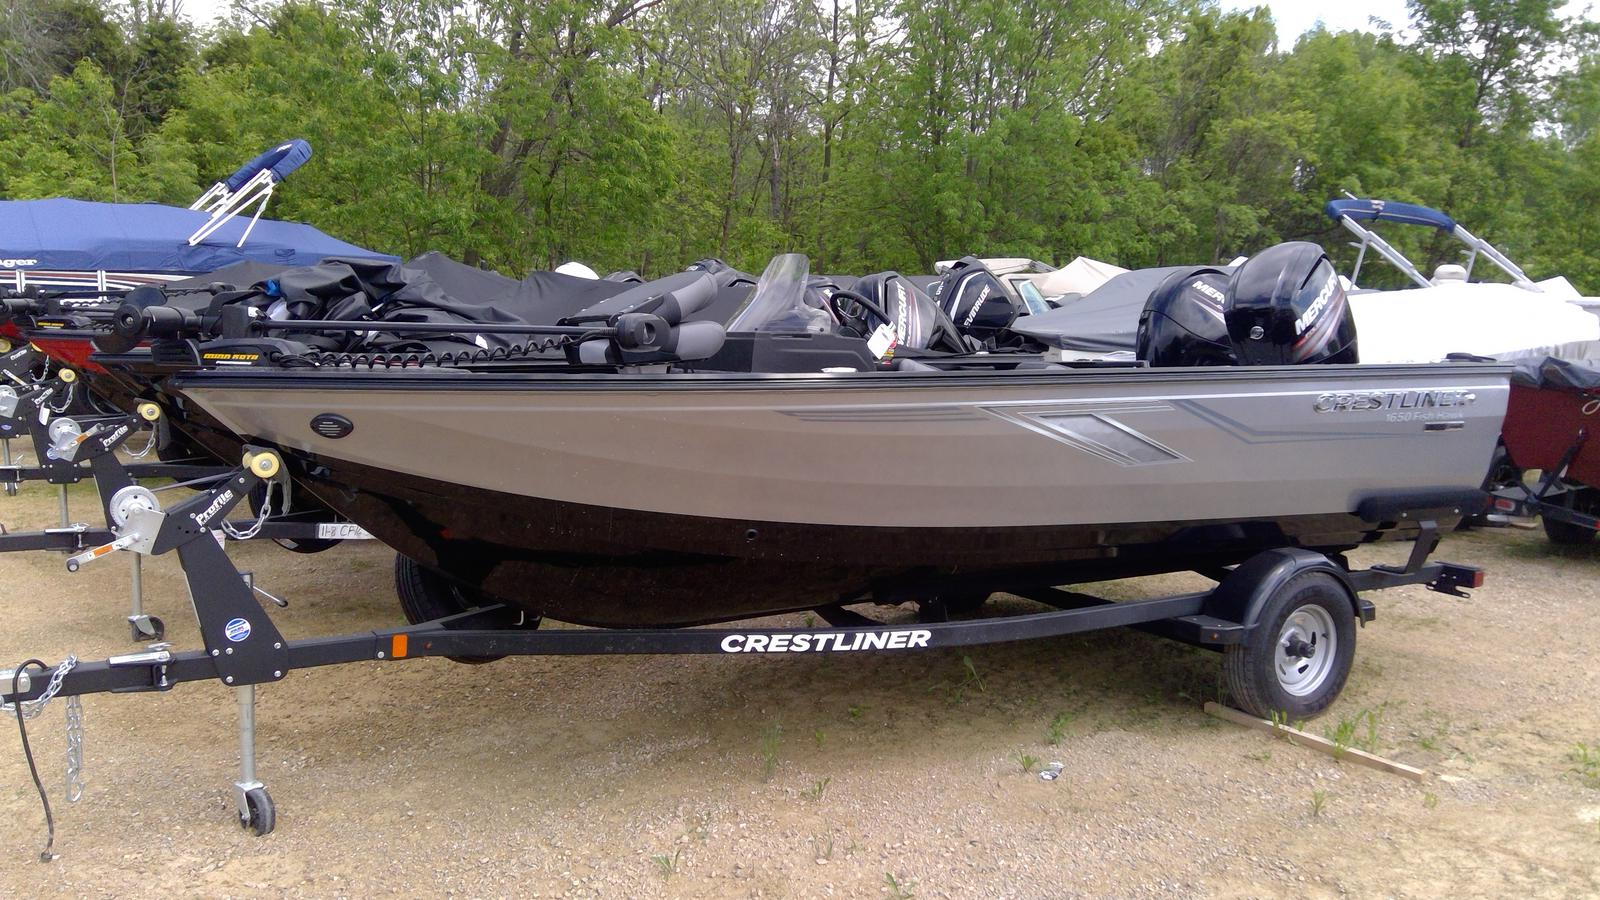 Inventory from Crestliner and Yamaha Quam's Marine & Motor Sports